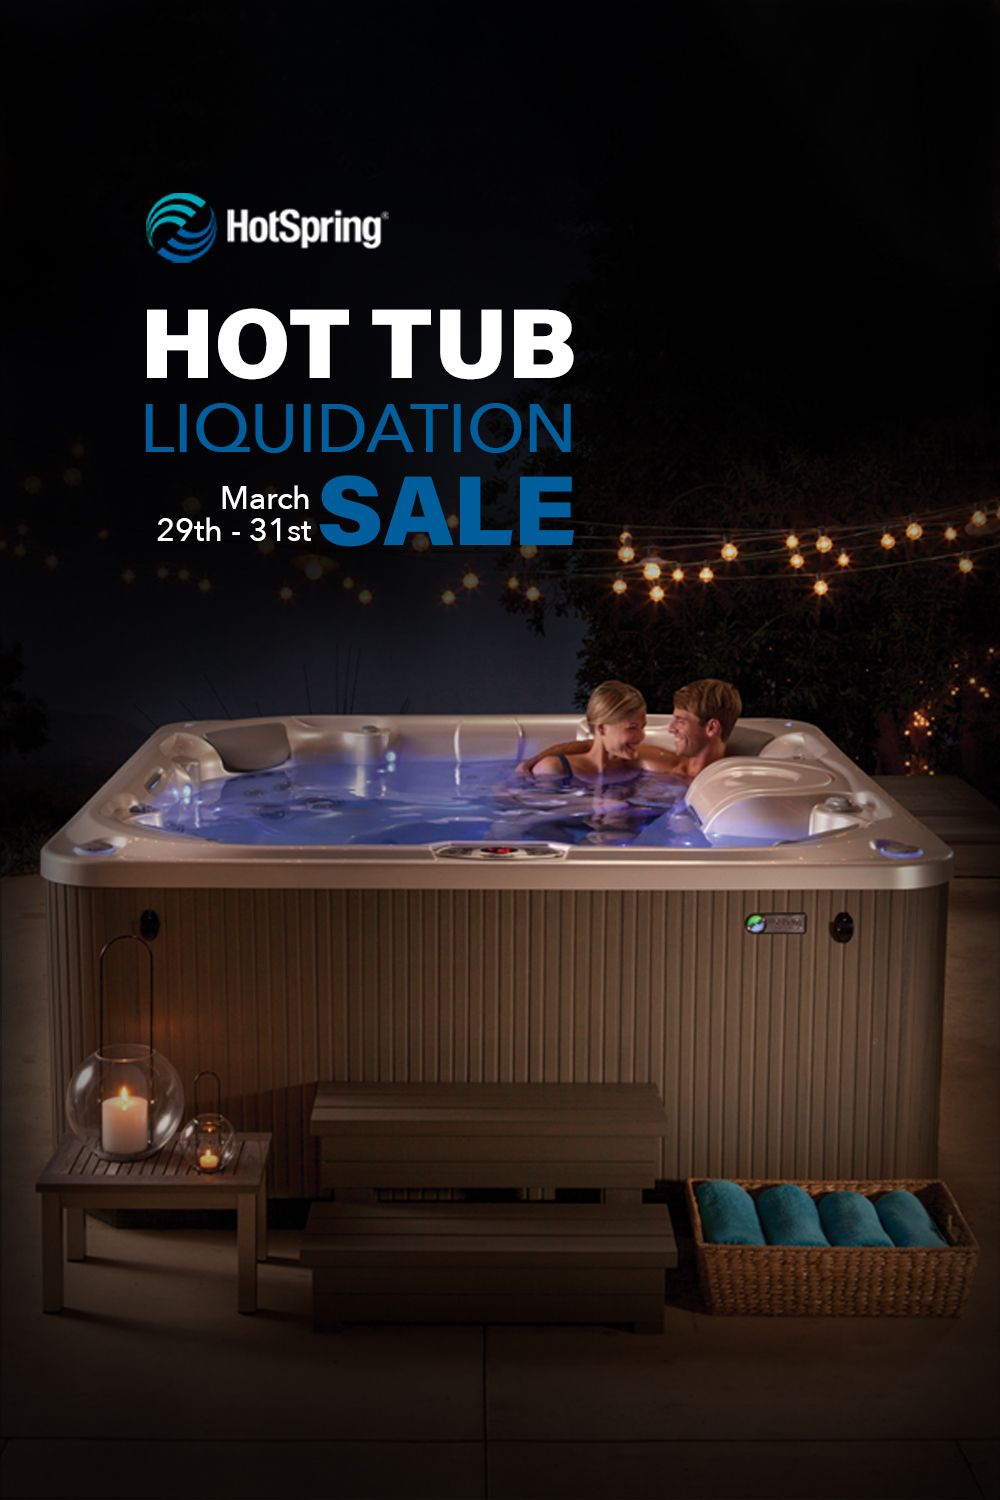 Luxury Hot Tubs For Less 3 Day Liquidation Sale Luxury Hot Tubs Hot Tub Discount Tubs